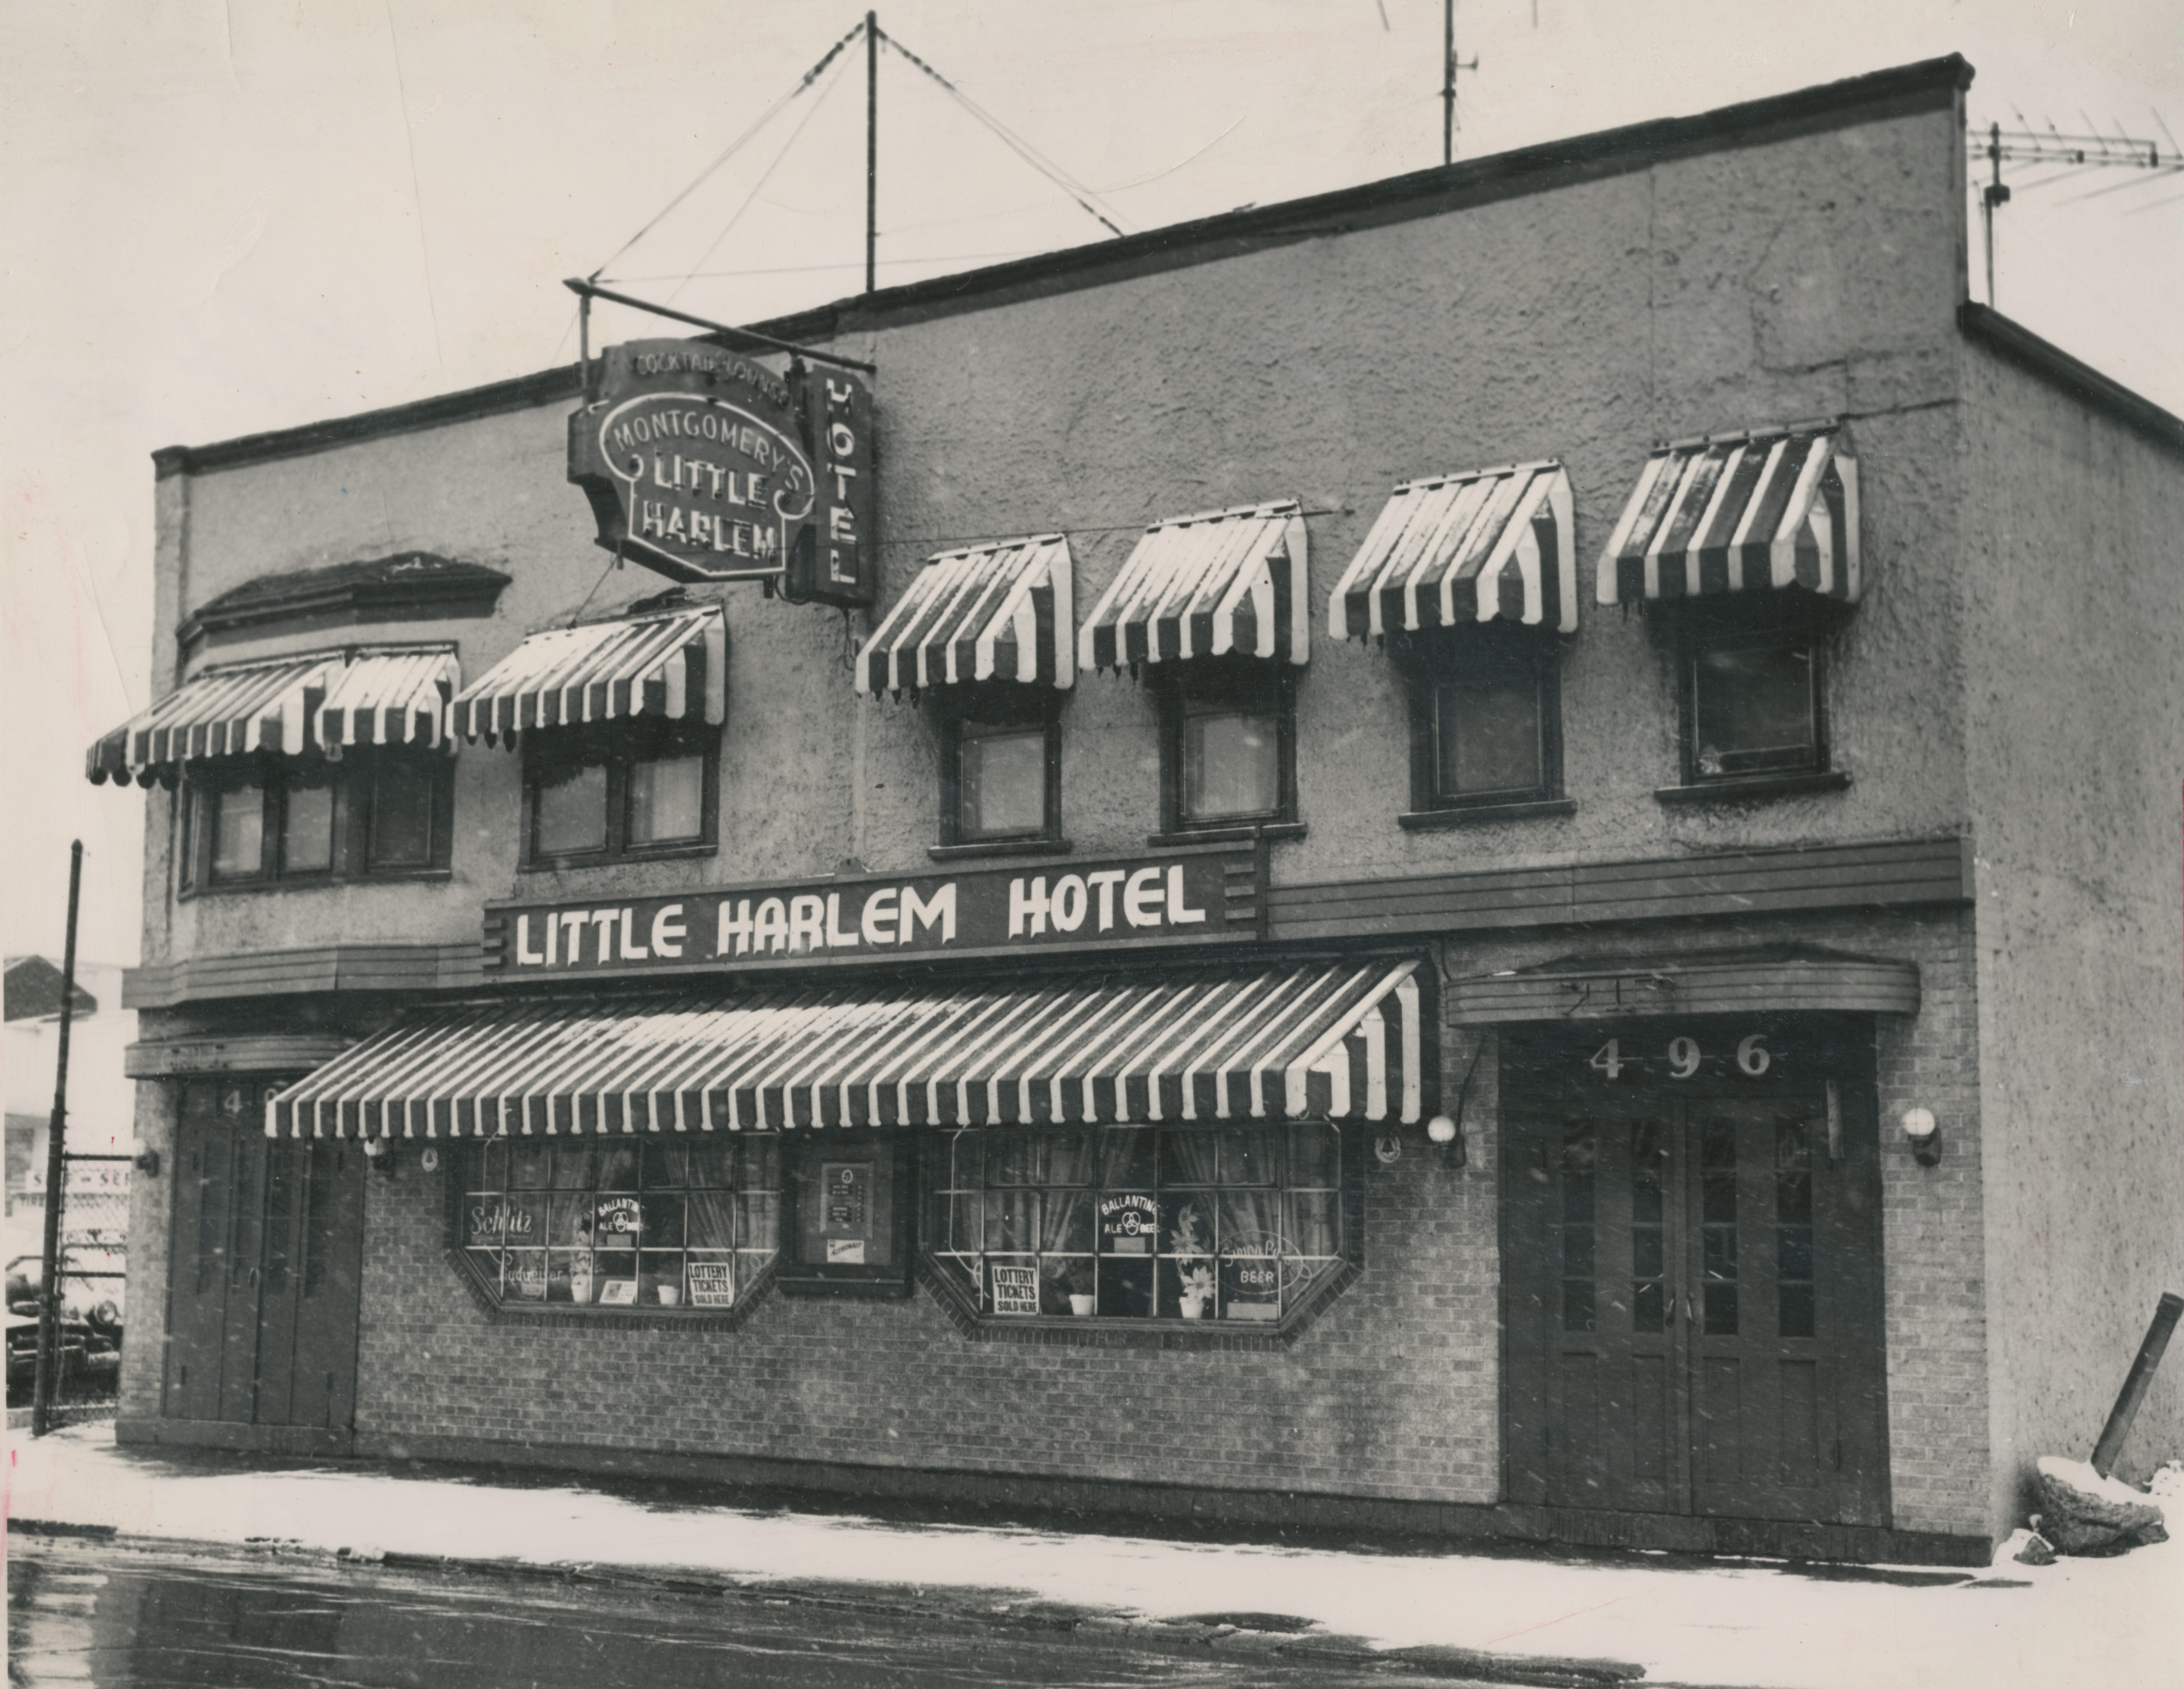 "The Little Harlem Hotel ""was the place ... to go when you dressed up ... and wanted to be seen."" Former Common Council President George K. Arthur on the Little Harlem Hotel."